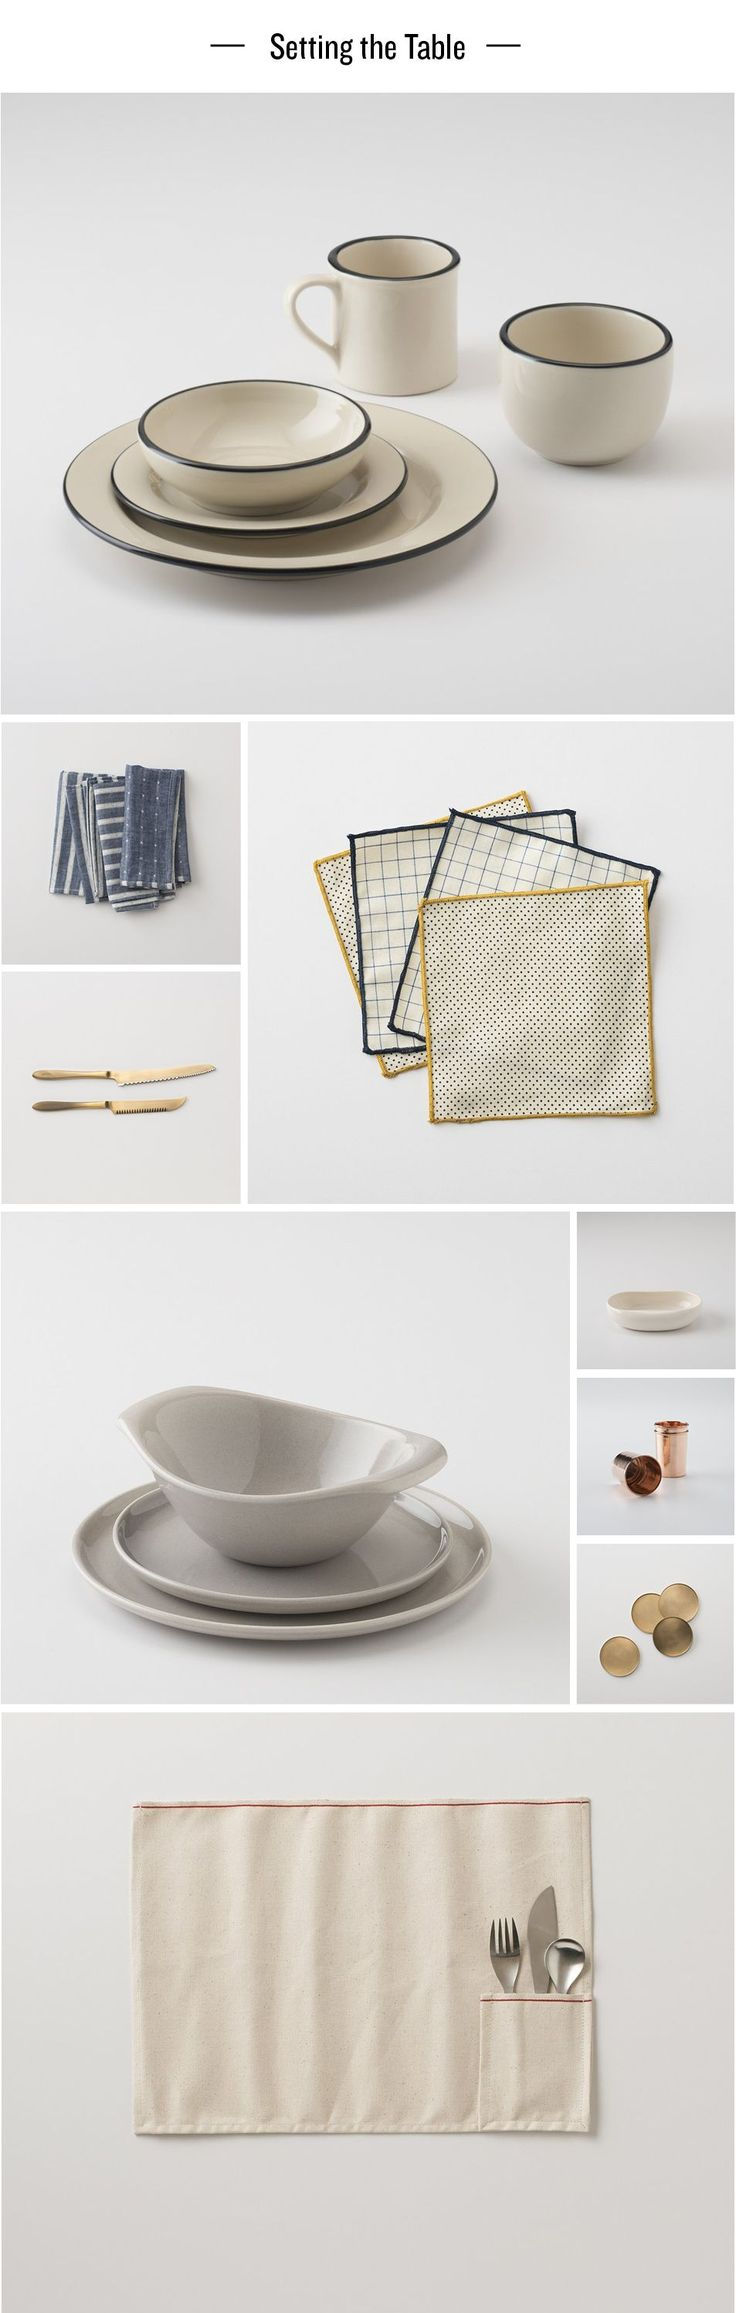 Accessories - Dining and Kitchen, filter_Product Material_Stainless Steel, In-Stock, Returnable Accessories - Dining and Kitchen, Fall-16, filter_Product Material_Salt-Glazed Stoneware, In-Stock, Returnable Cookware, Fall-16, filter_Product Material_Cast Iron / Stainless Steel / Brass, In-Stock, Returnable Fall-16, filter_Product Material_Cotton, In-Stock, Linens - Dining and Kitchen, Returnable Accessories - Dining and Kitchen, Fall-16, filter_Product Material_Cotton Canvas, In-Stock,